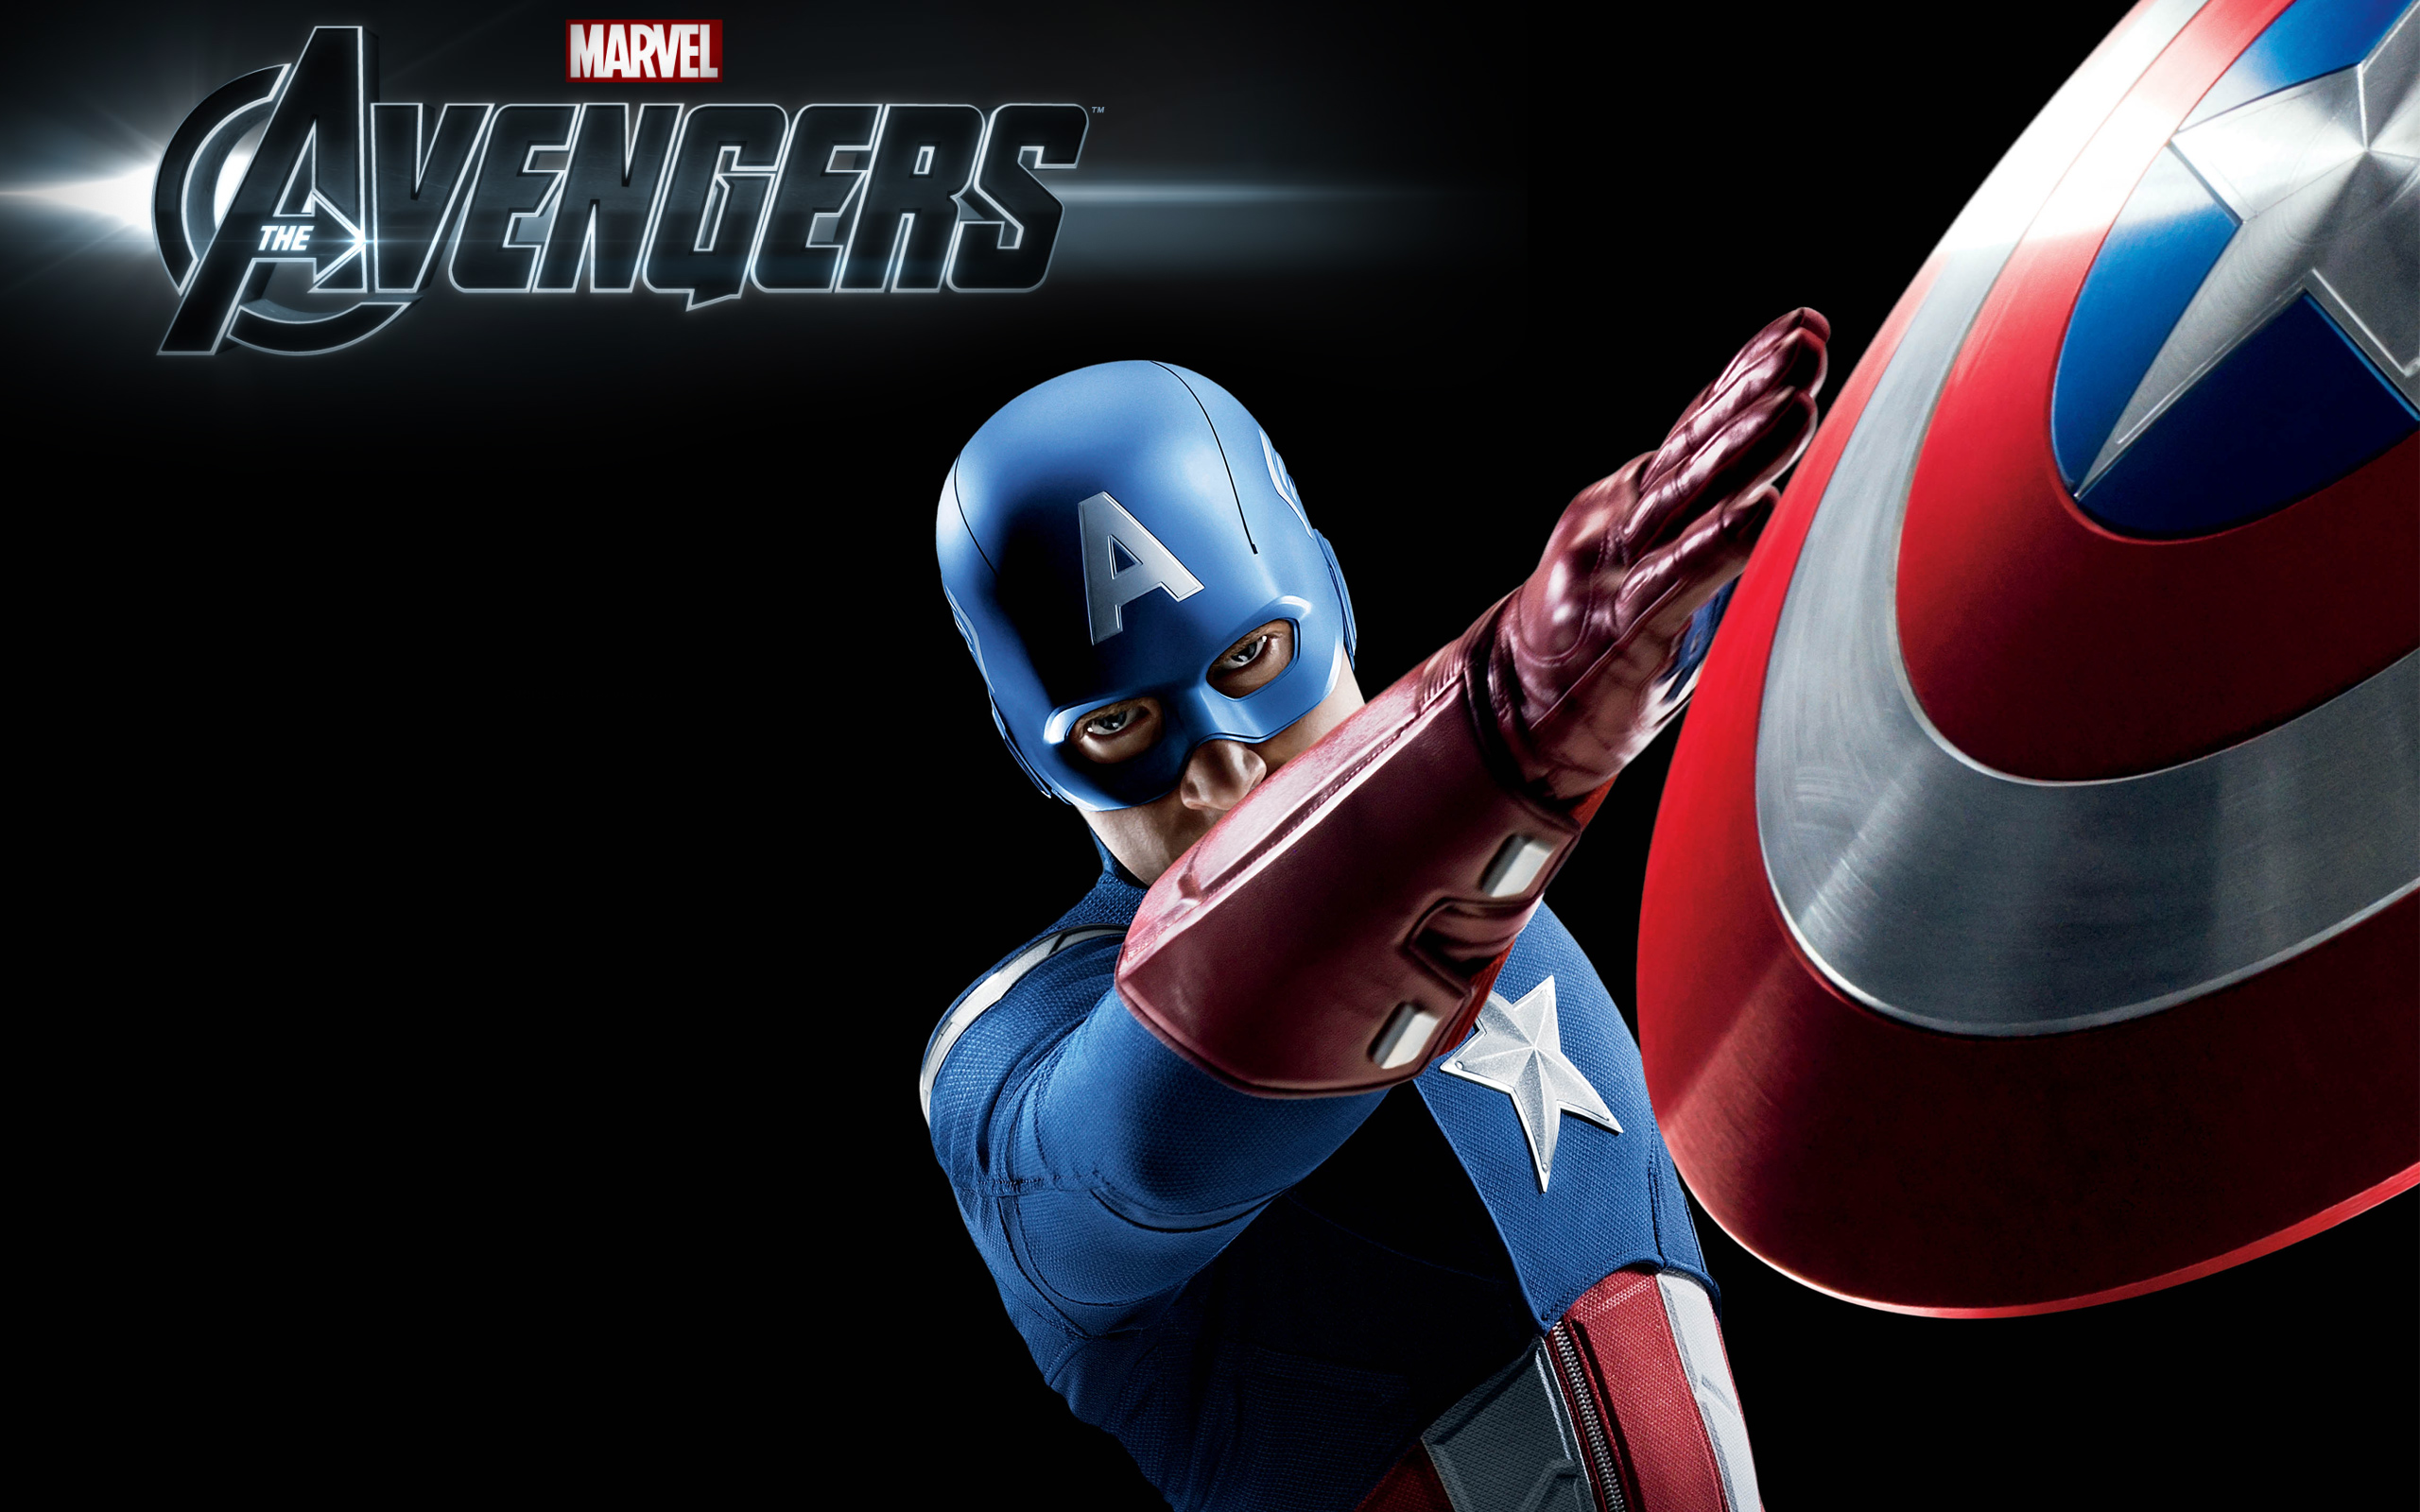 Captain America in The Avengers Wallpapers HD Wallpapers 2560x1600